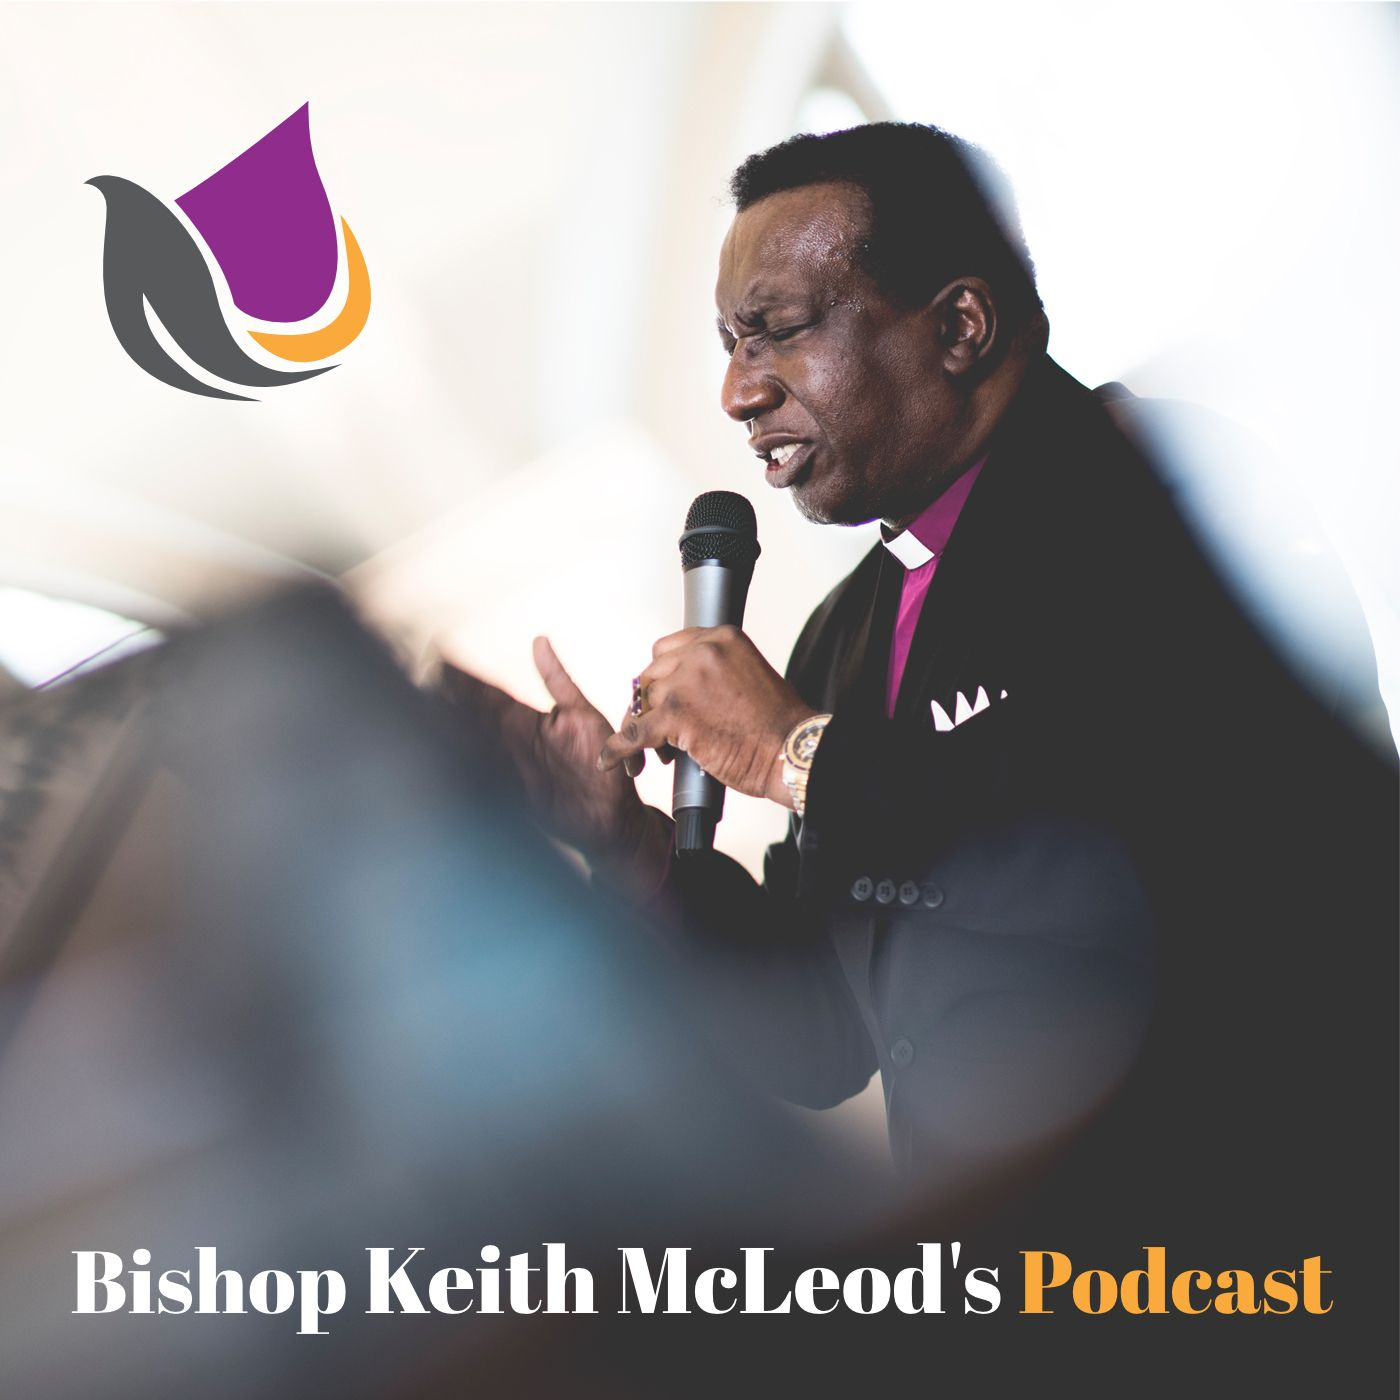 Bishop Keith McLeod